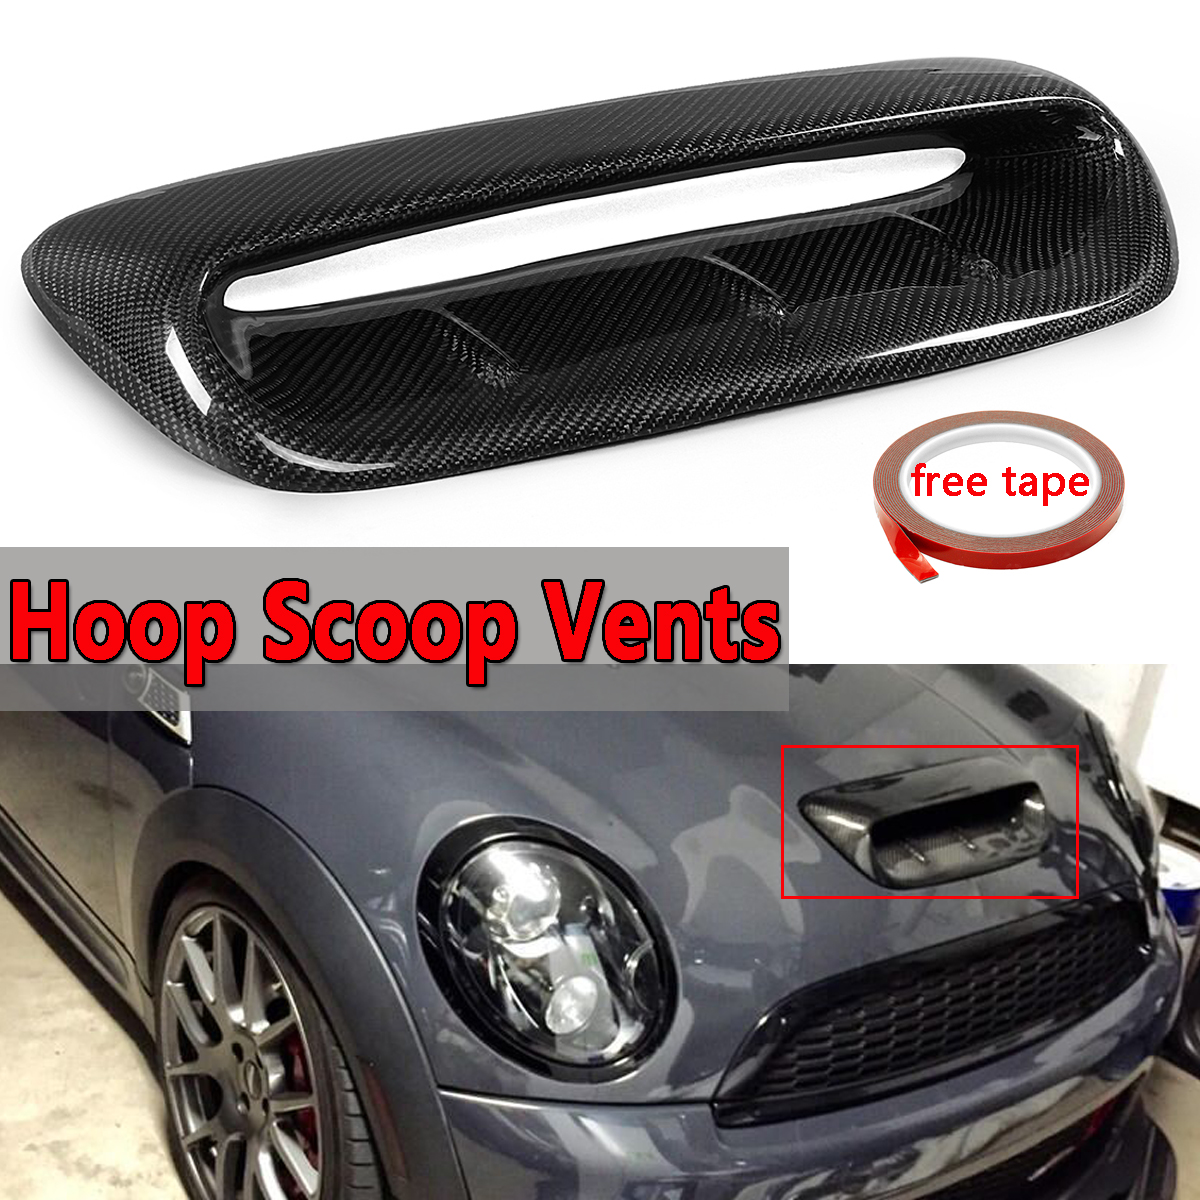 Front Hood Scoop Vent For Mini Cooper S R56 2007-2014 VTX Style Real Carbon Fiber Bonnet Air Flow Intake Scoop Decorative Covers ob 515 universal air flow vent hood covers for car silver pair